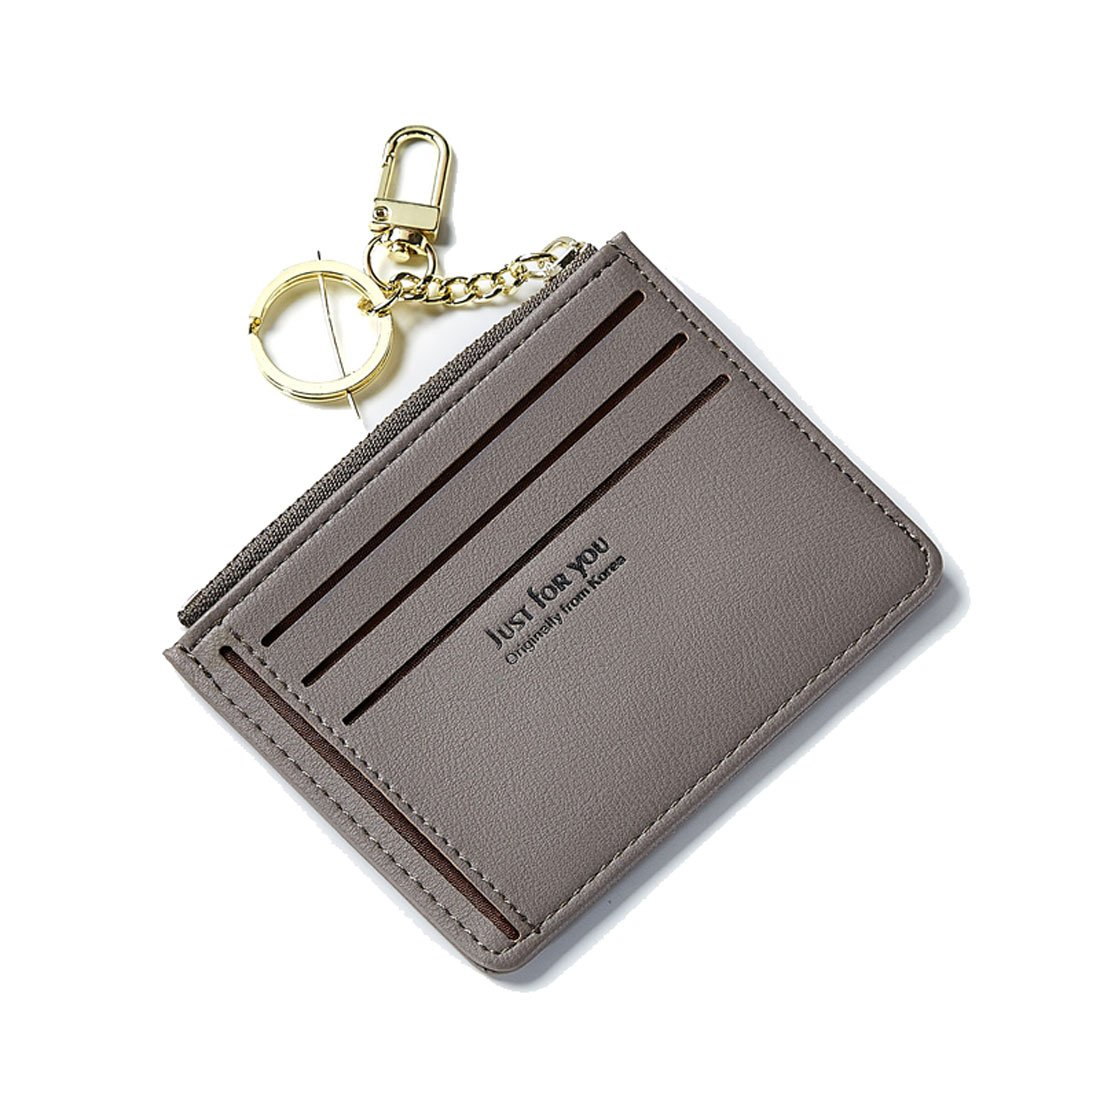 Slim Wallet Women Cute Purse Super Thin Card Holder Compact Pocket Mini Pouch With ID Card Window Keychain Teengirls Grey